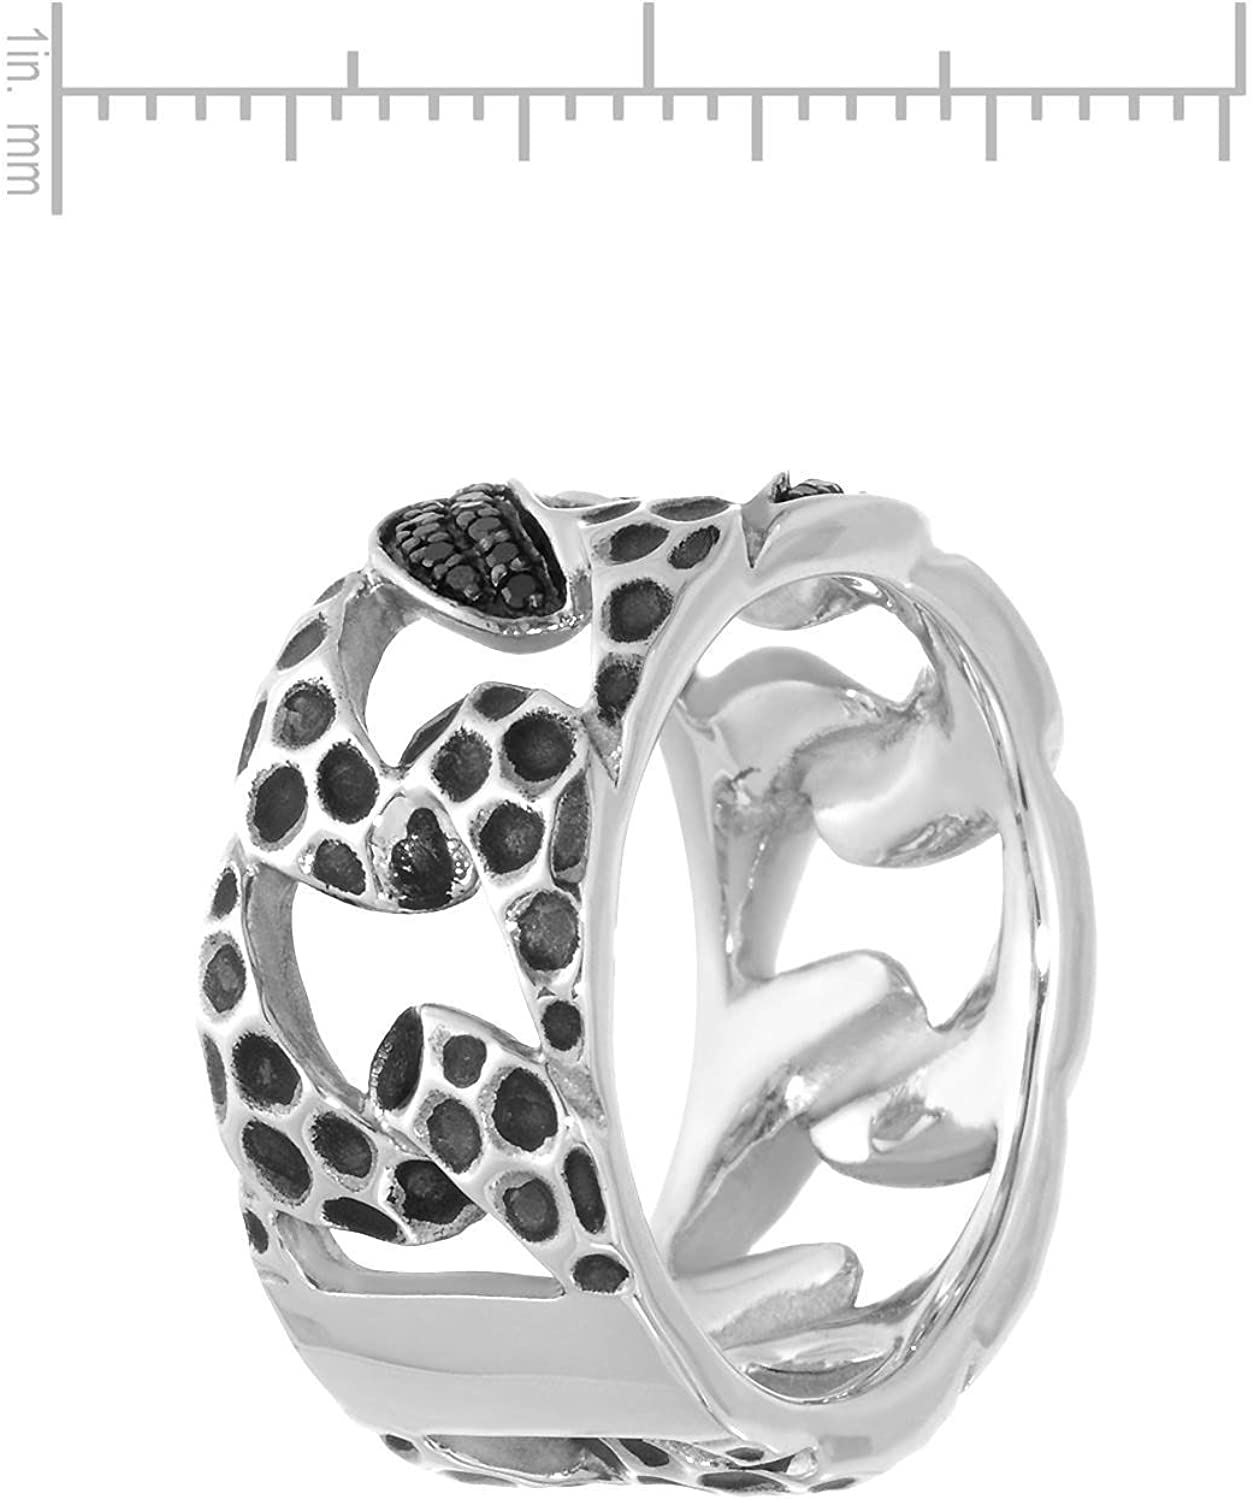 Ring Size 9. Currency Sterling Silver 0.39 CTW Color Black Opaque Diamond Band Ring For Men